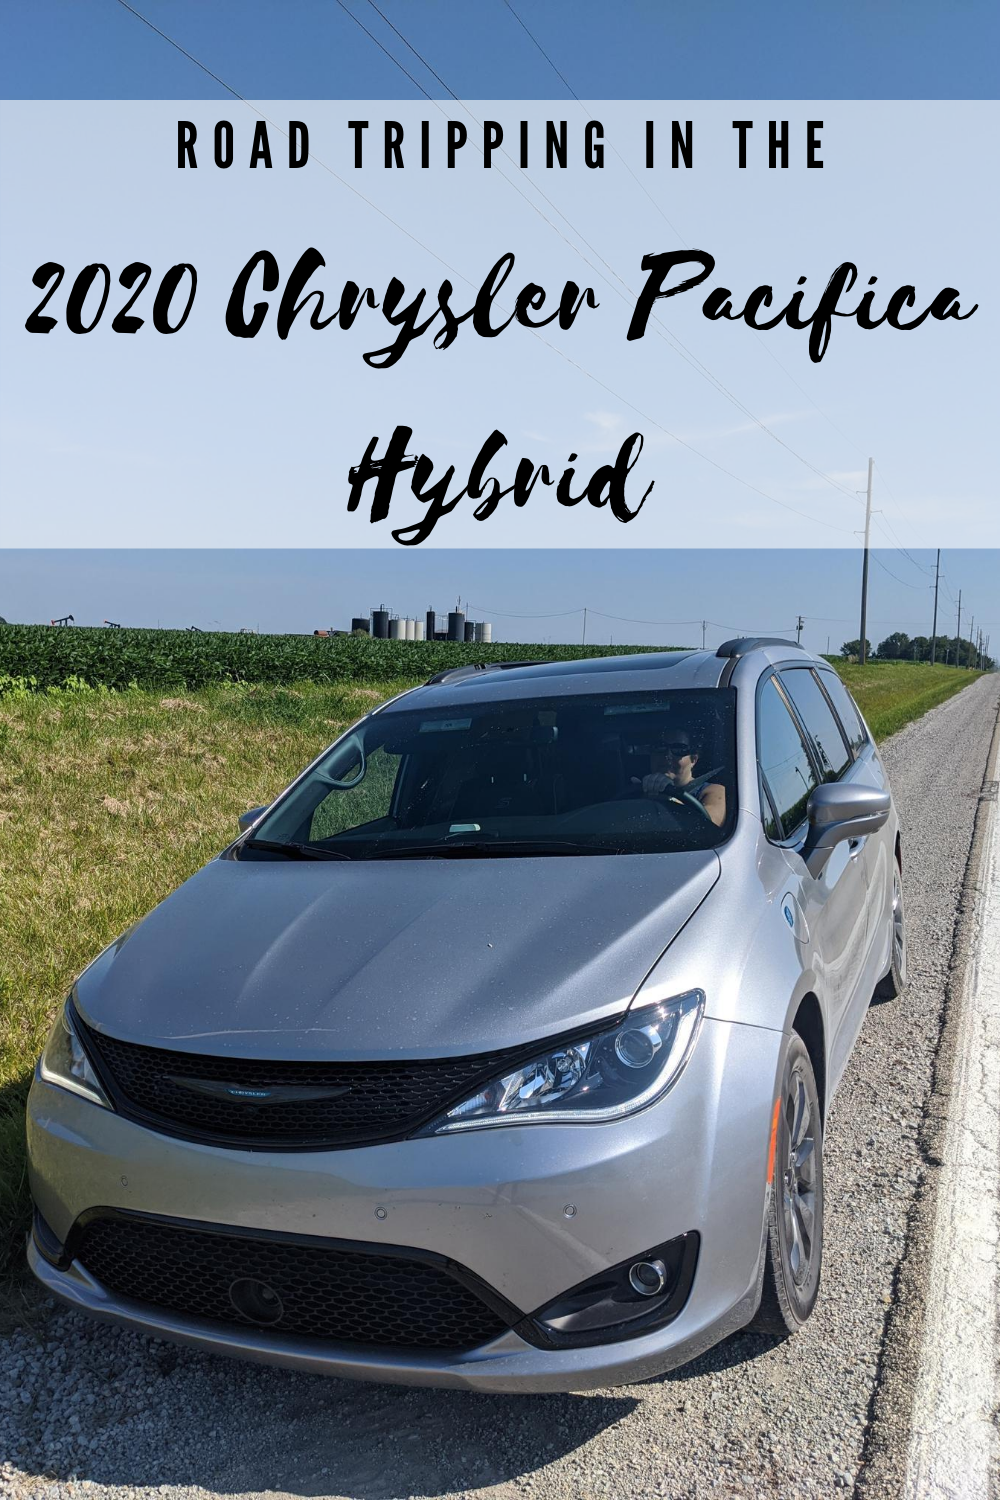 Road Tripping in the 2020 Chrysler Pacifica Hybrid